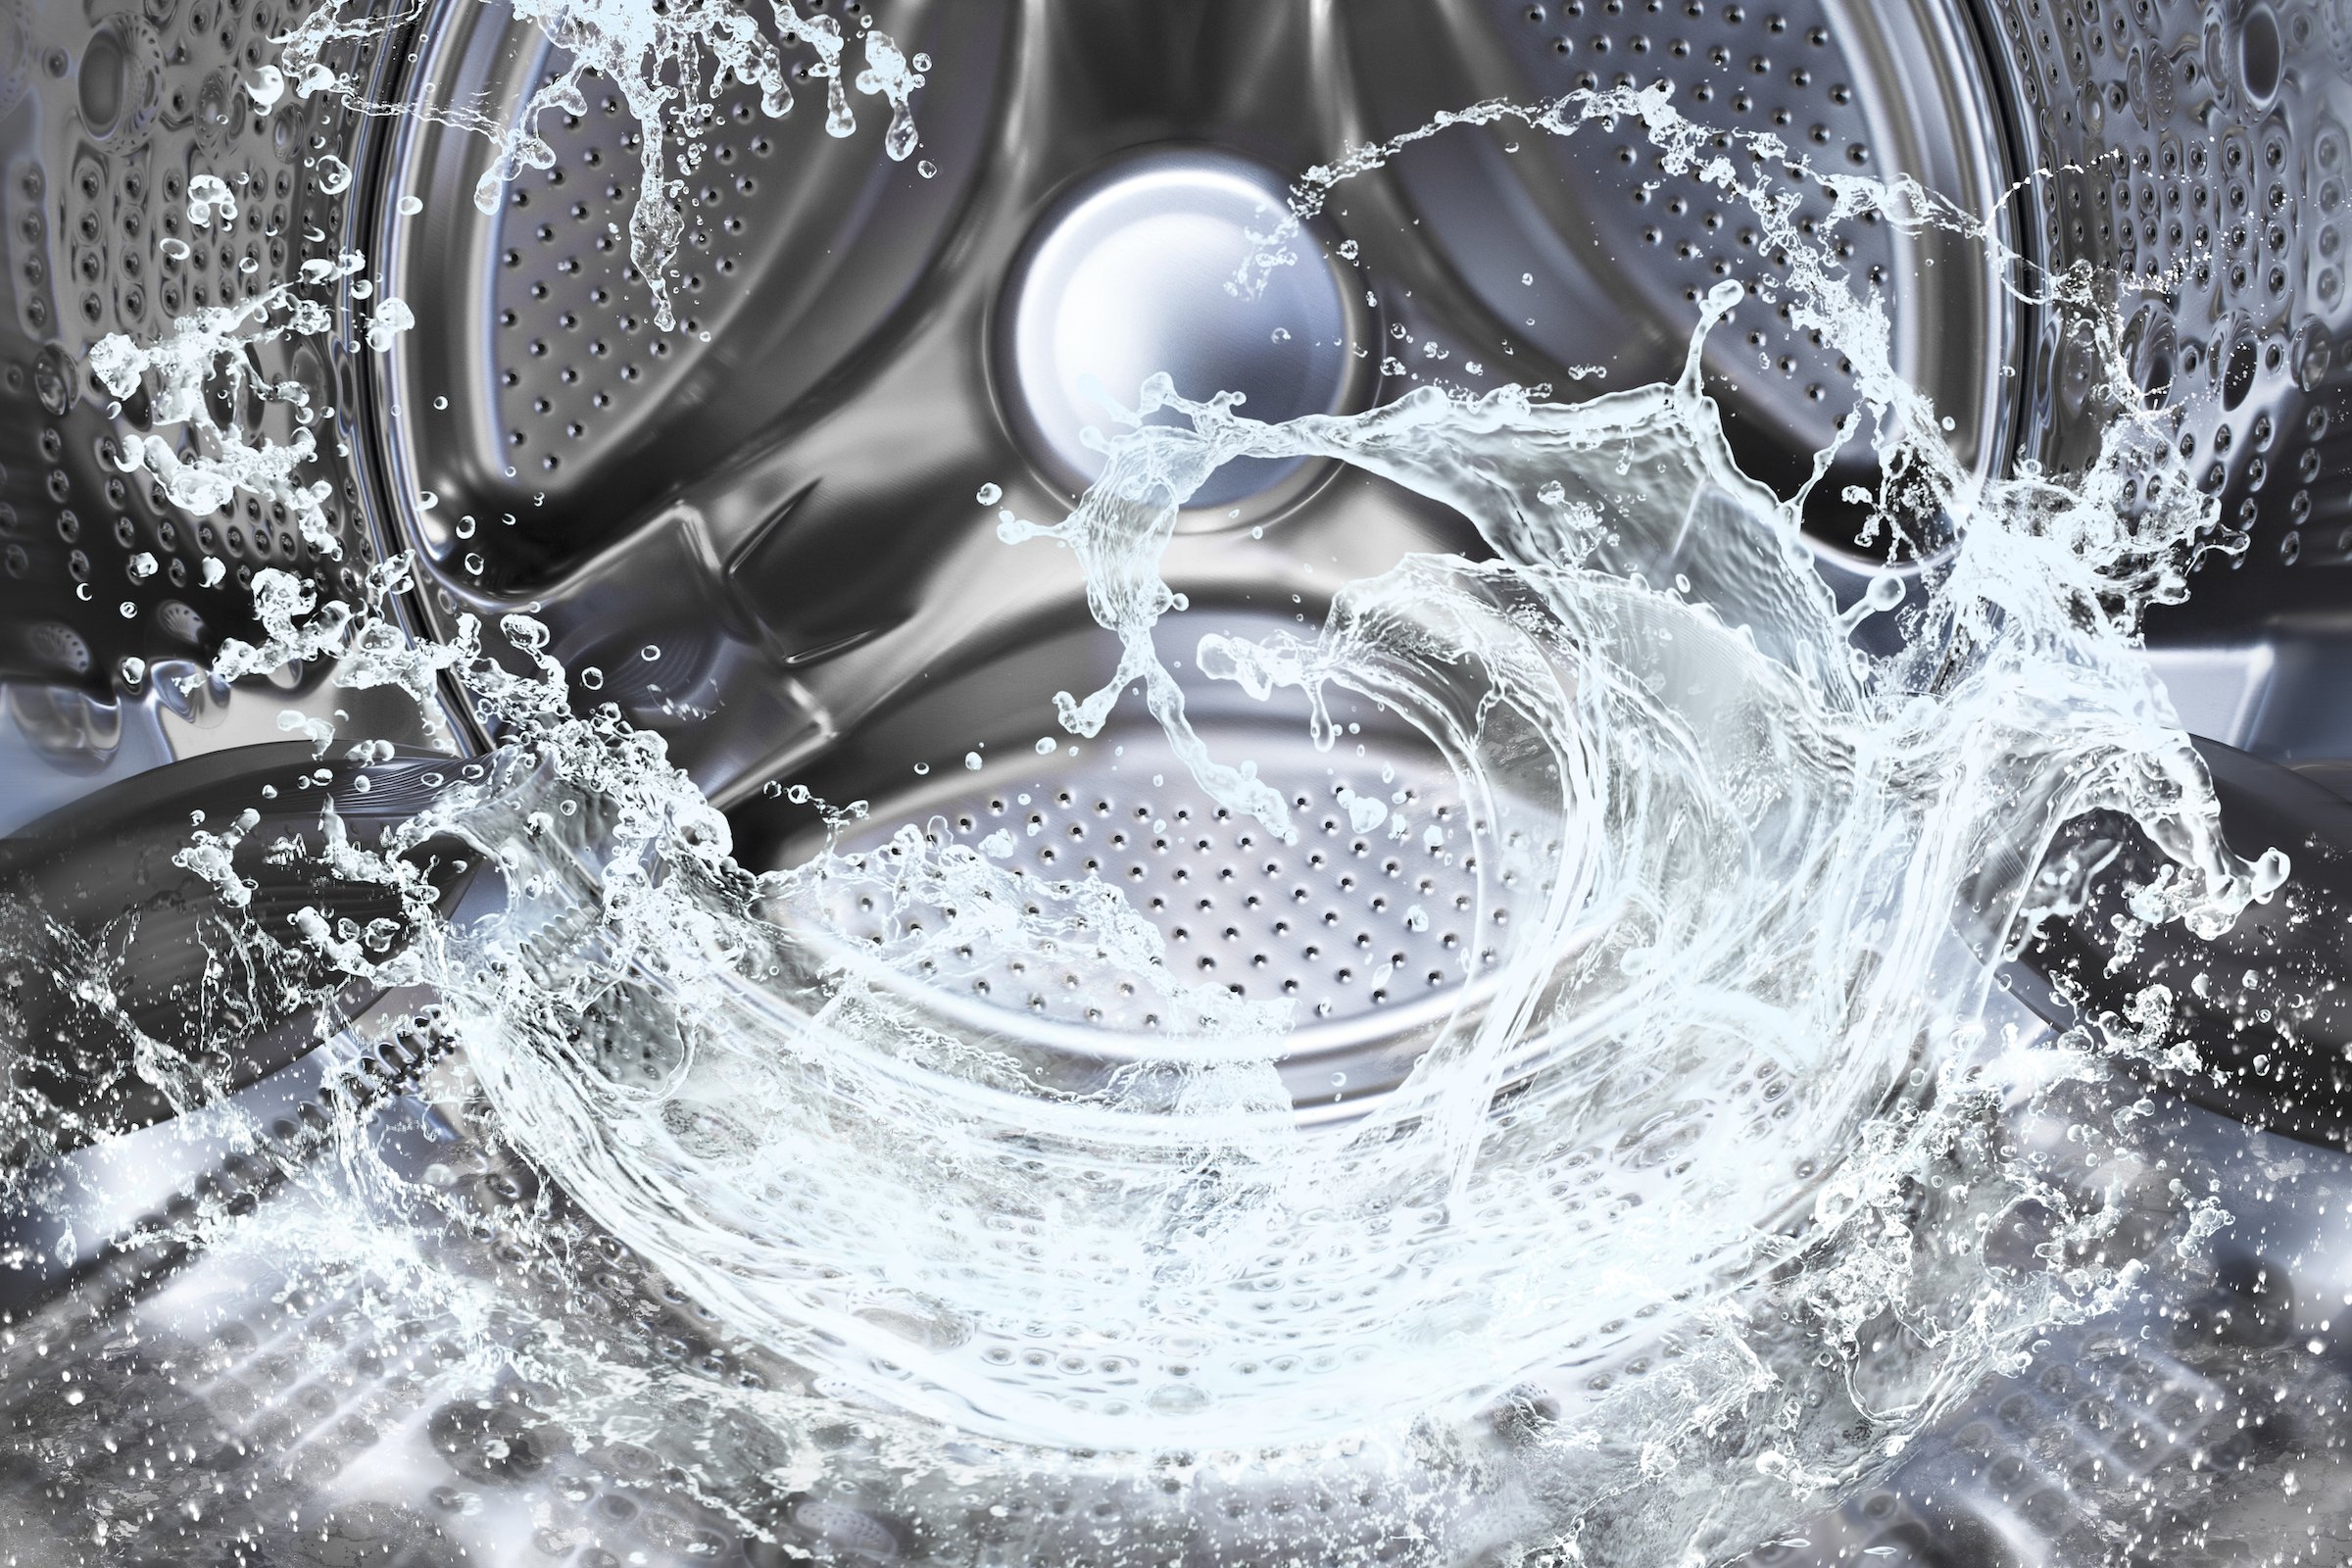 Is your washing machine making noise while spinning? Here's what could be wrong.